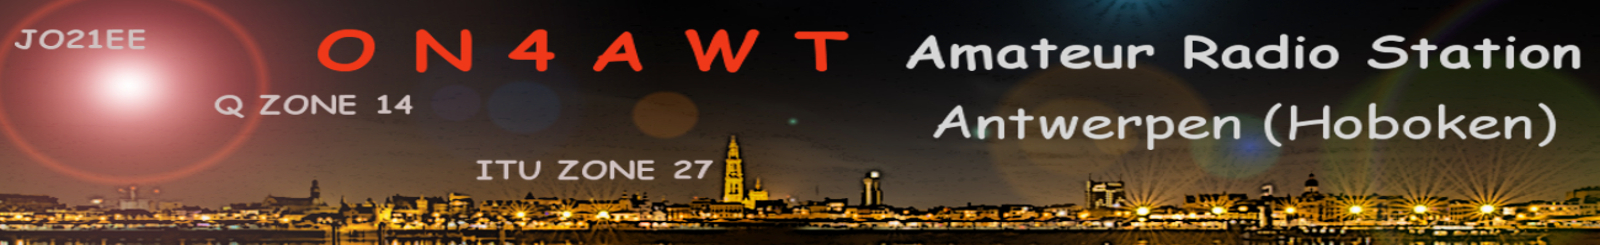 on4awt main logo2 1600x246